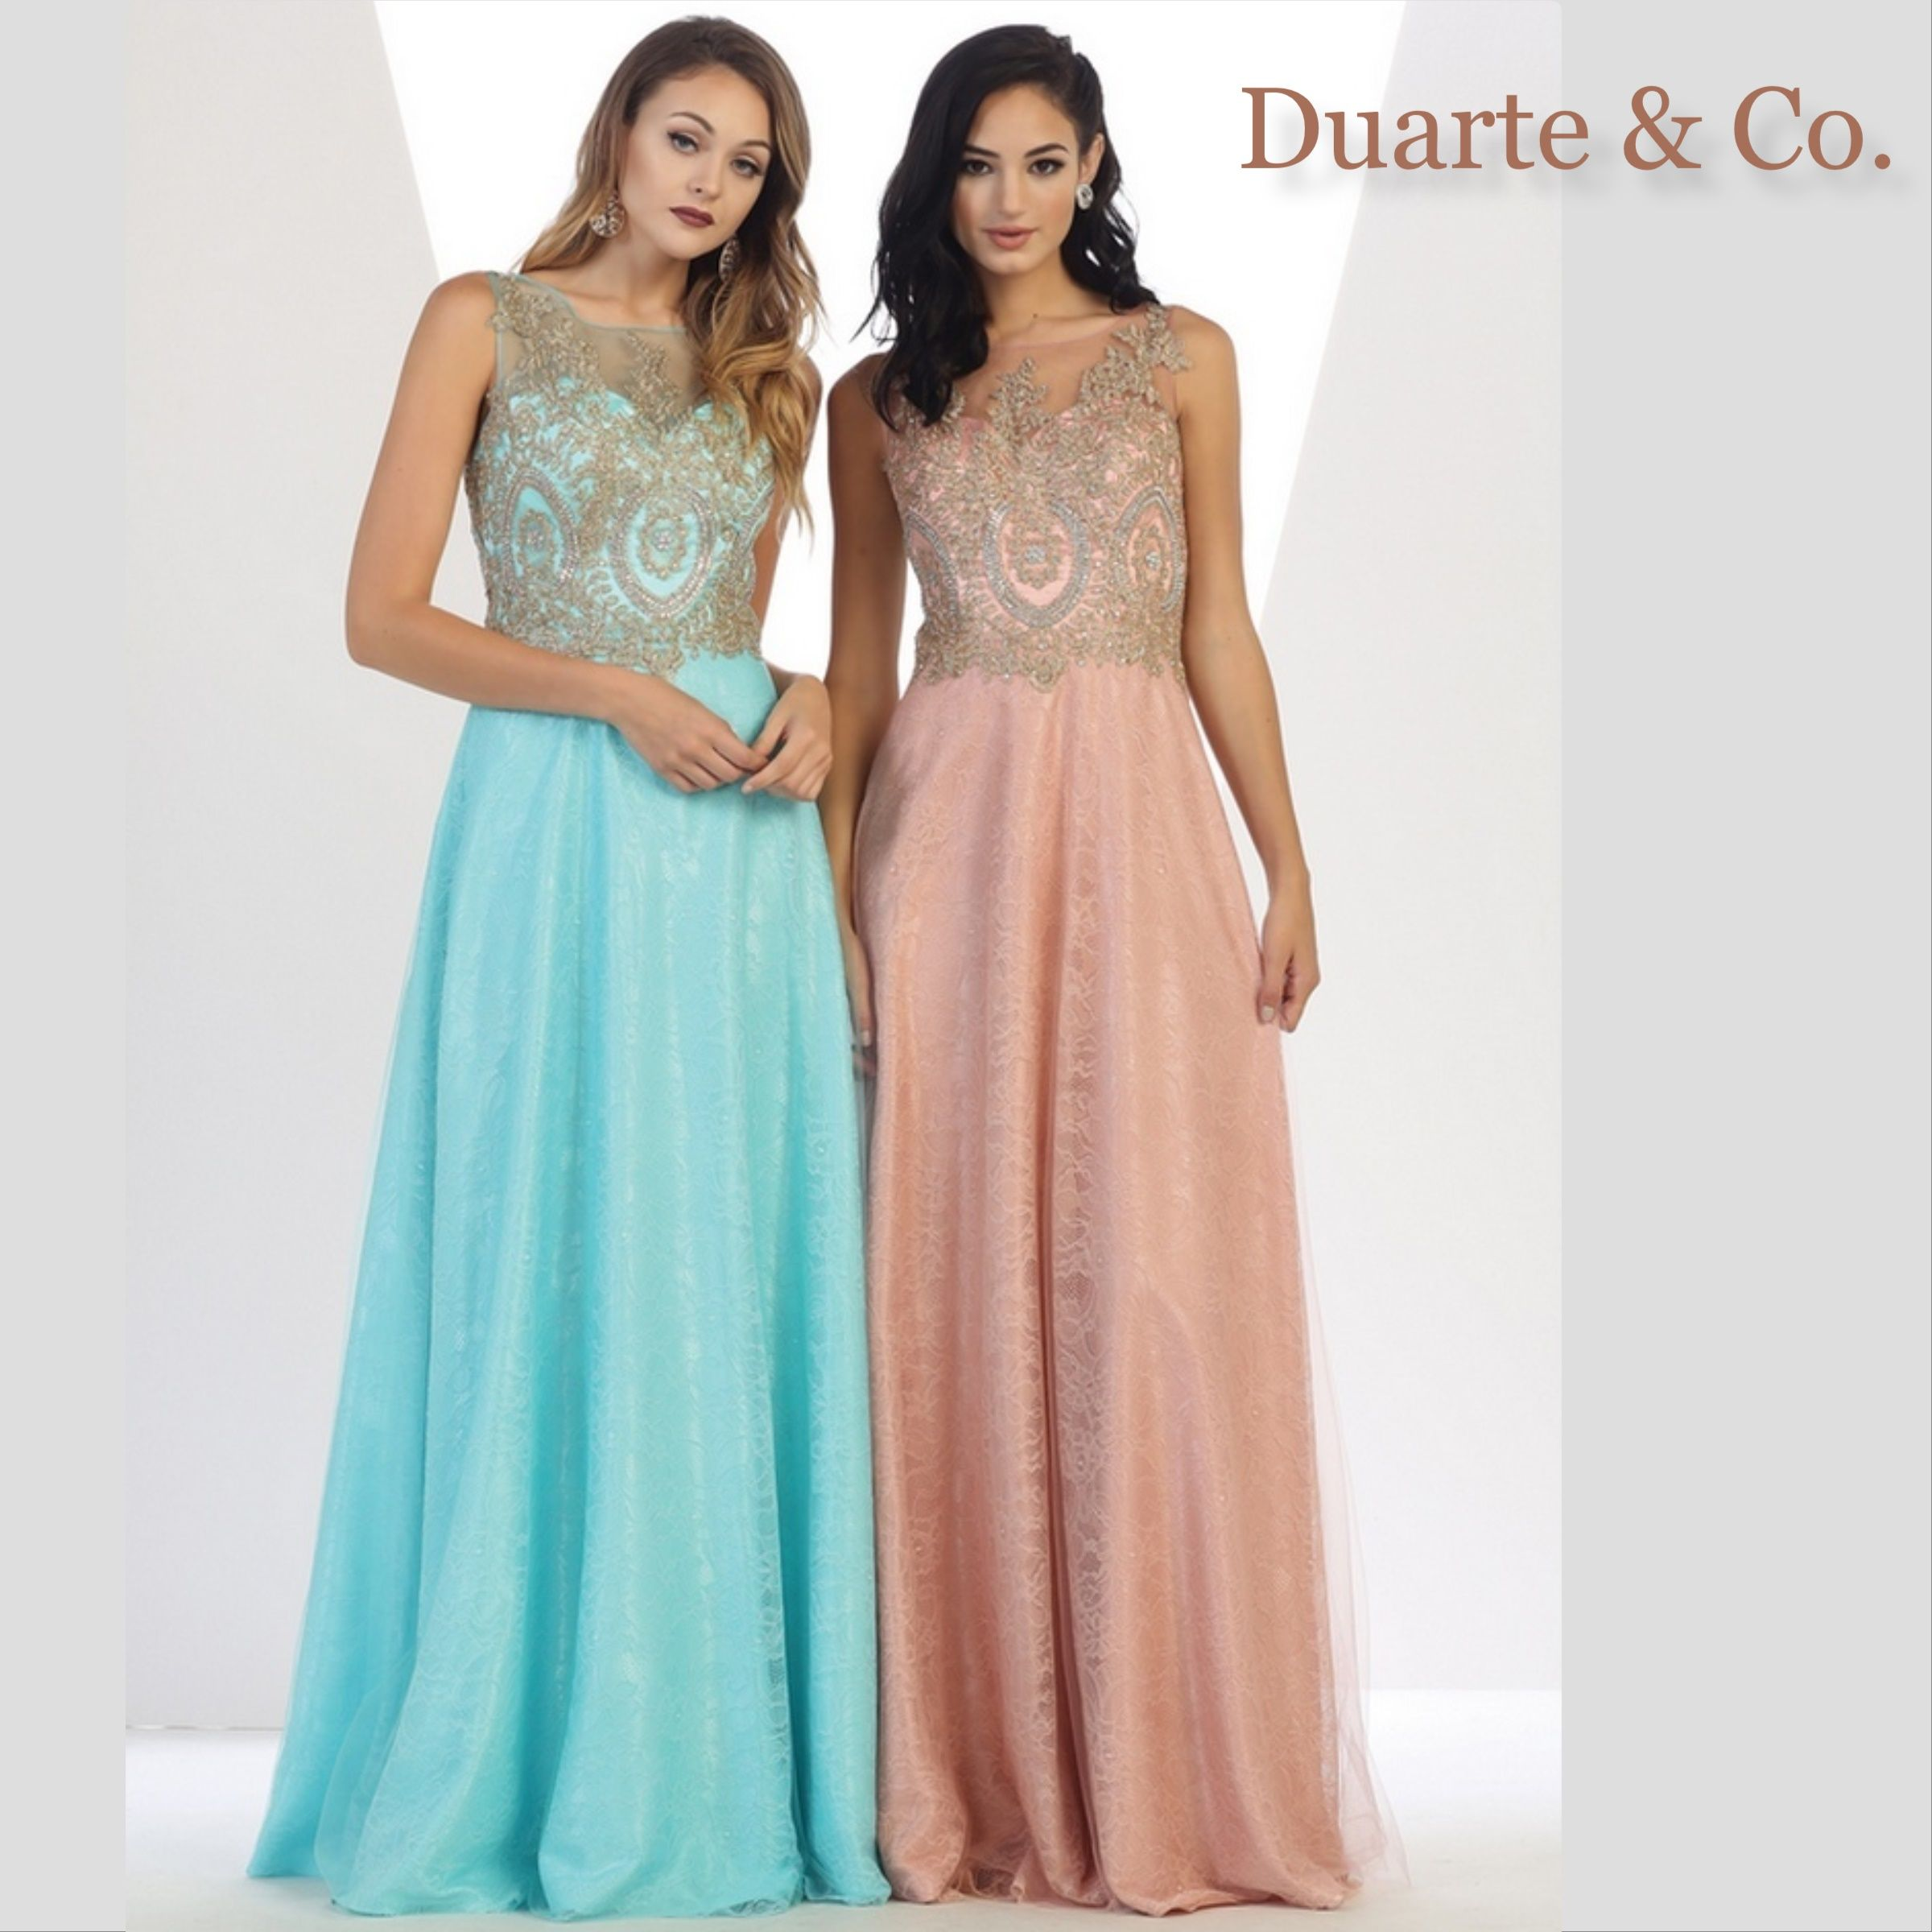 Sleeveless Party Dress W/Plus Sizes - MQ1293 | Mesh material, Prom ...